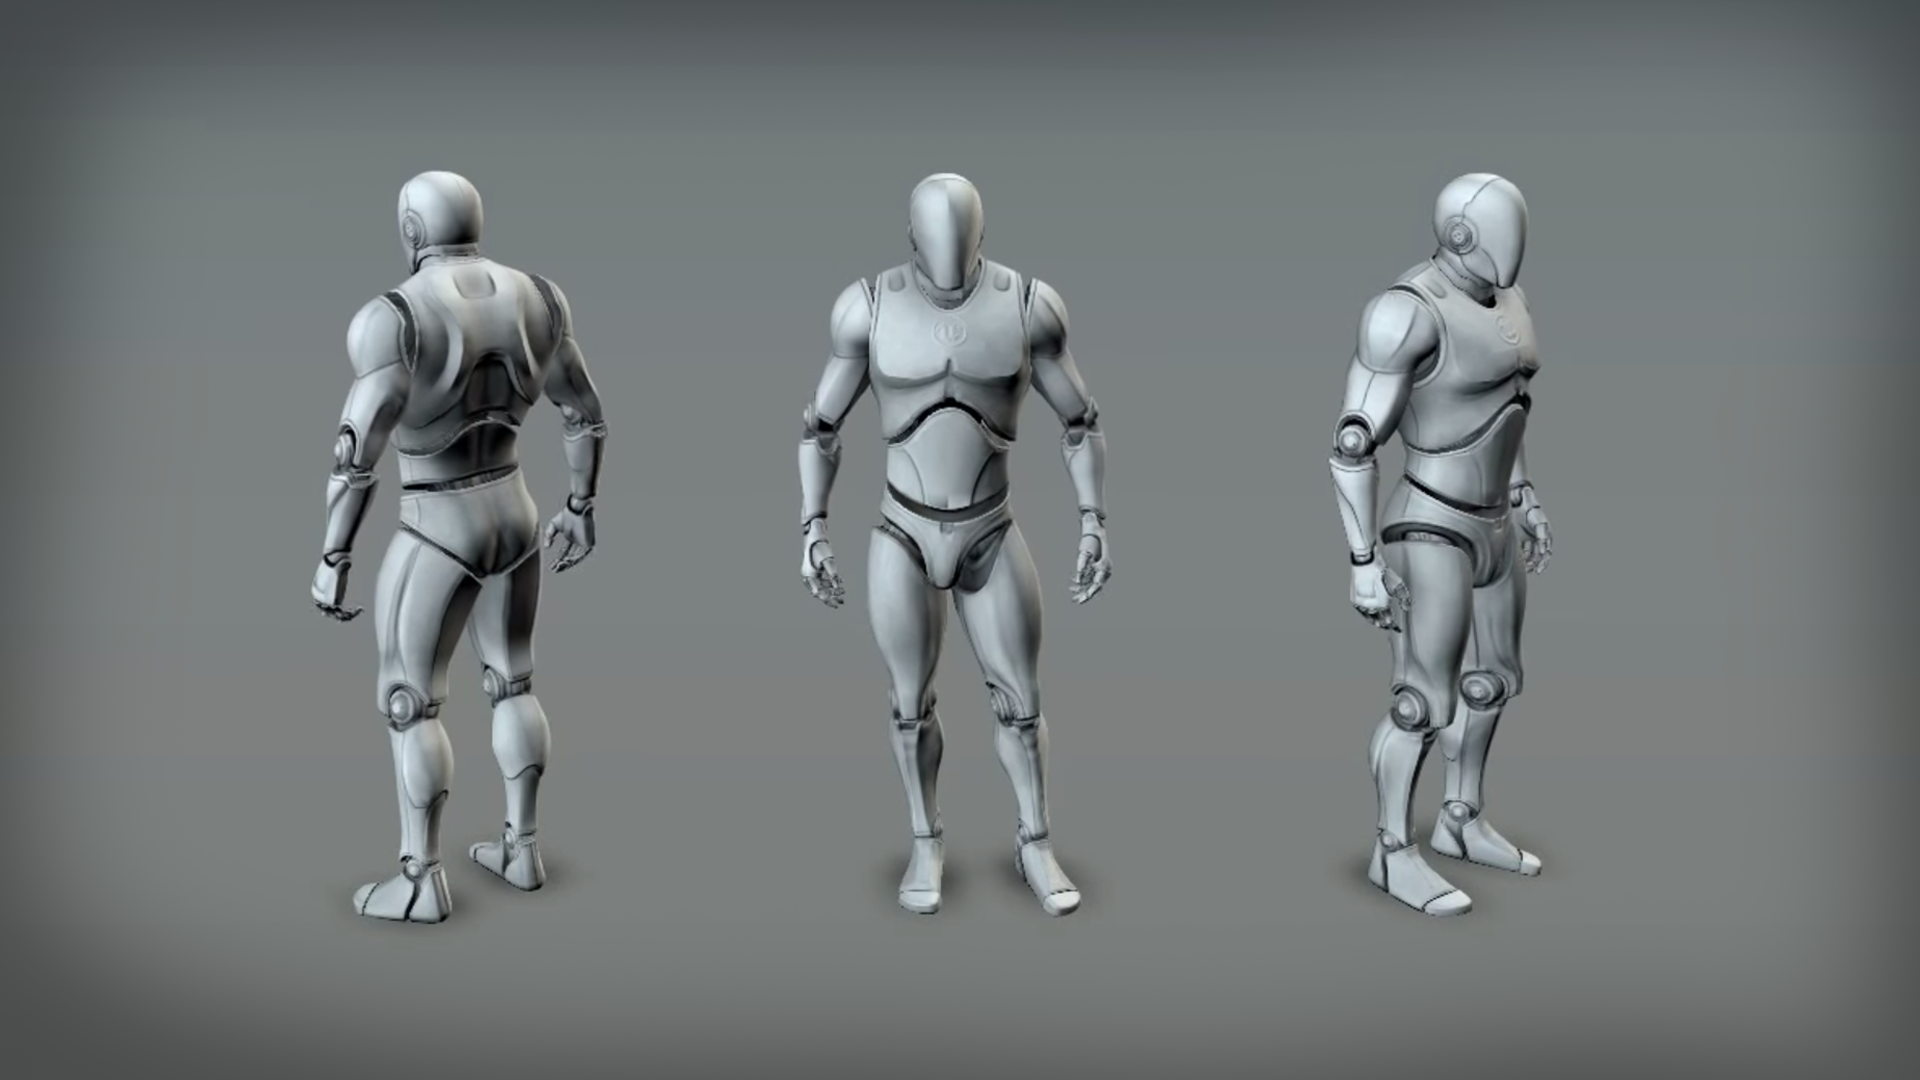 Idle and Gestures by Moonshine Studio LLC